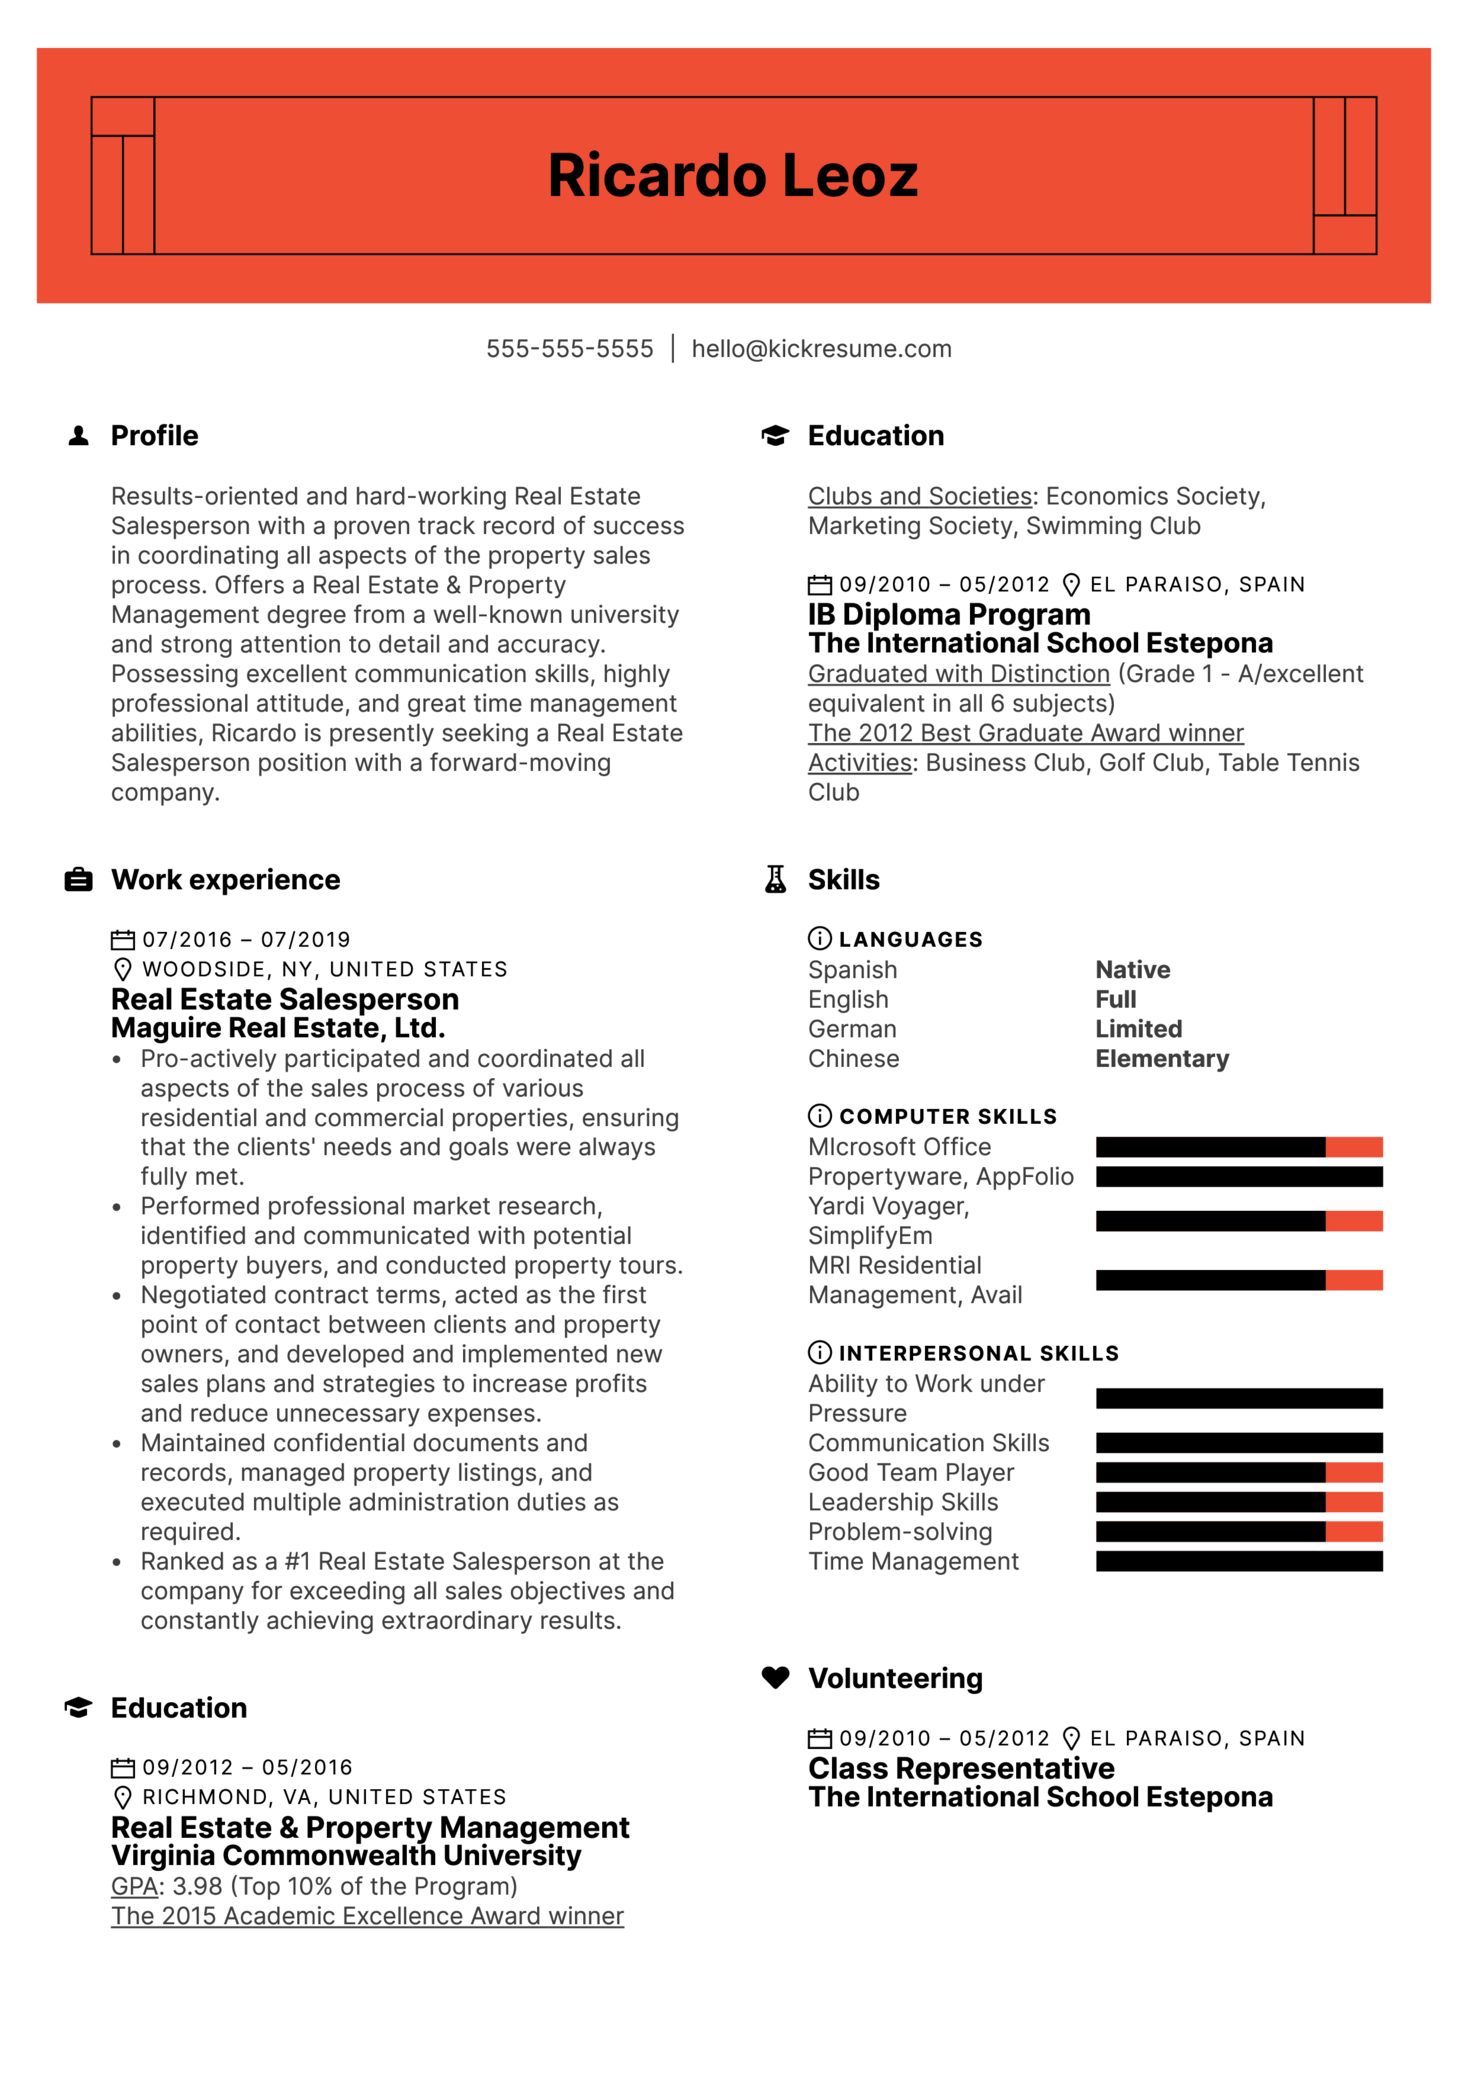 Real Estate Salesperson Resume Sample (Teil 1)